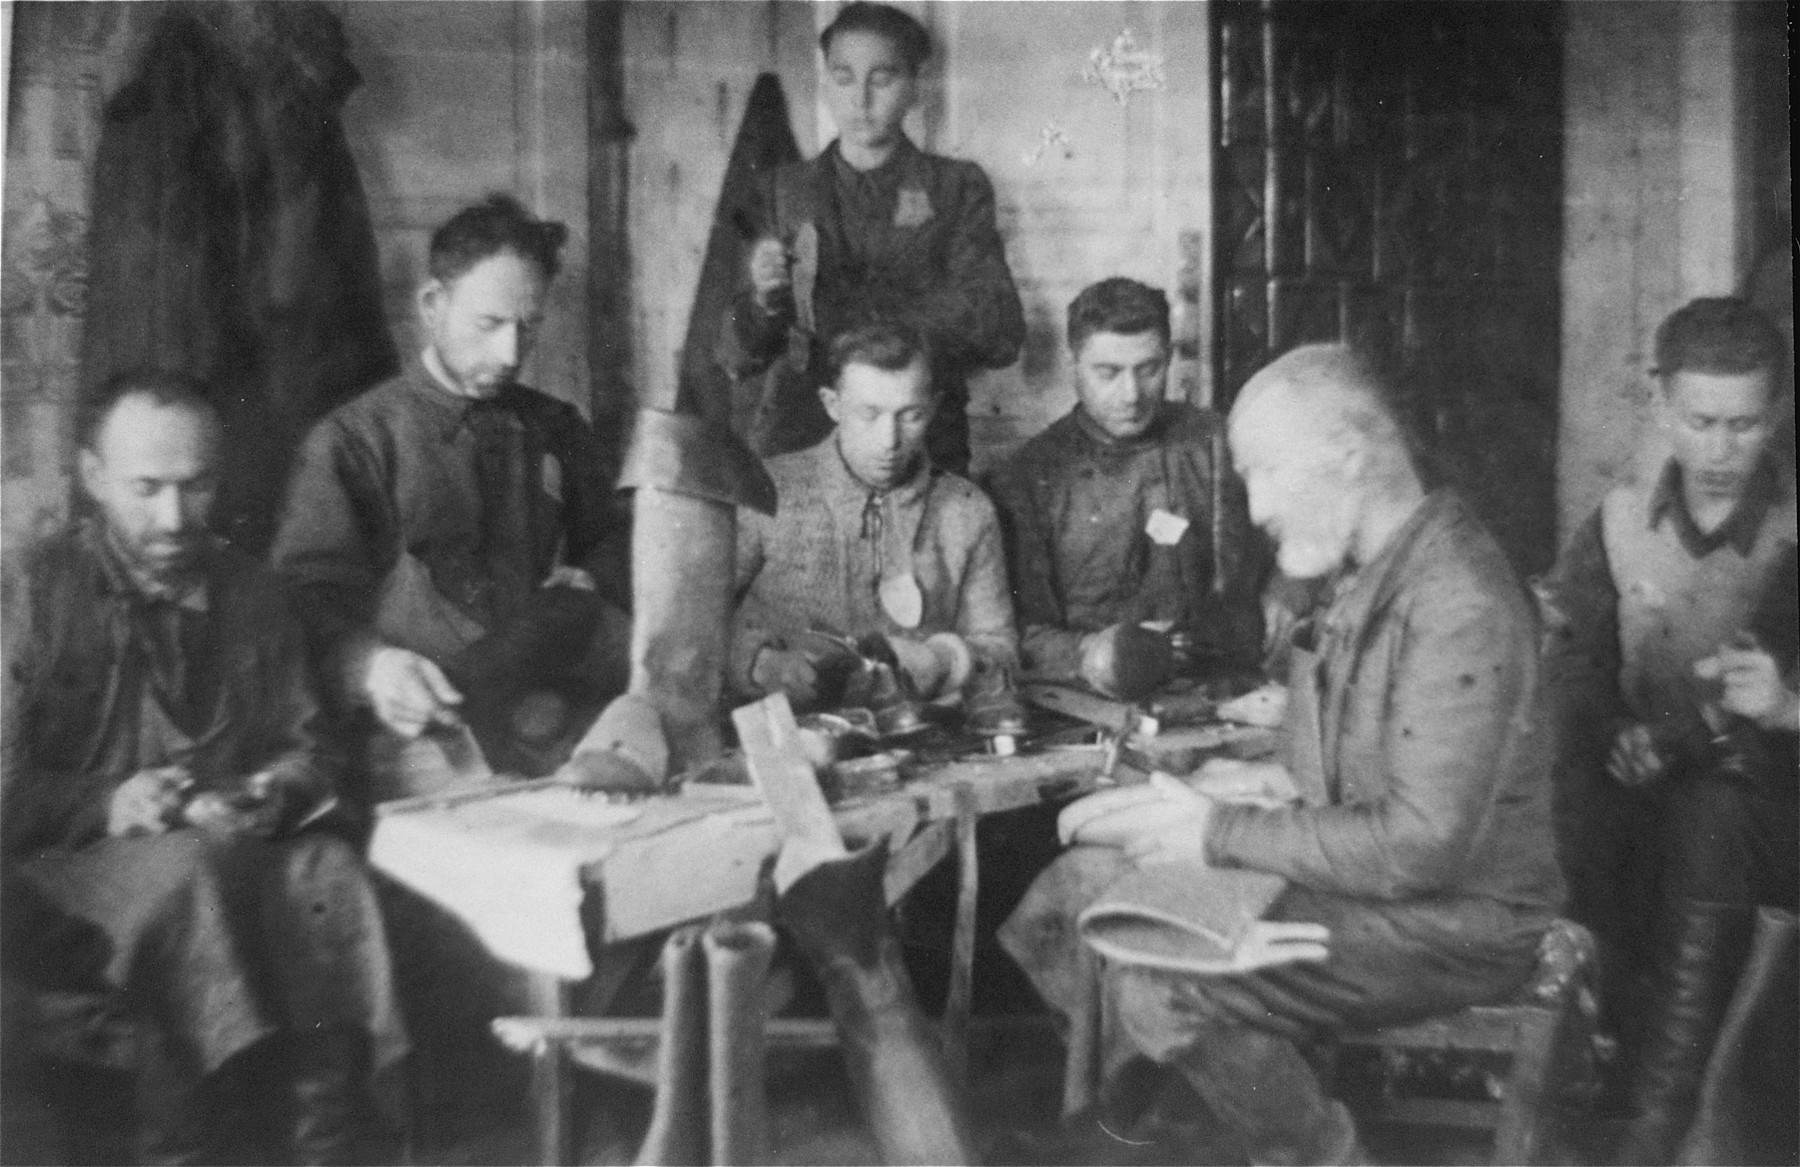 Jewish men at work in a shoemaking workshop in the Glubokoye ghetto.